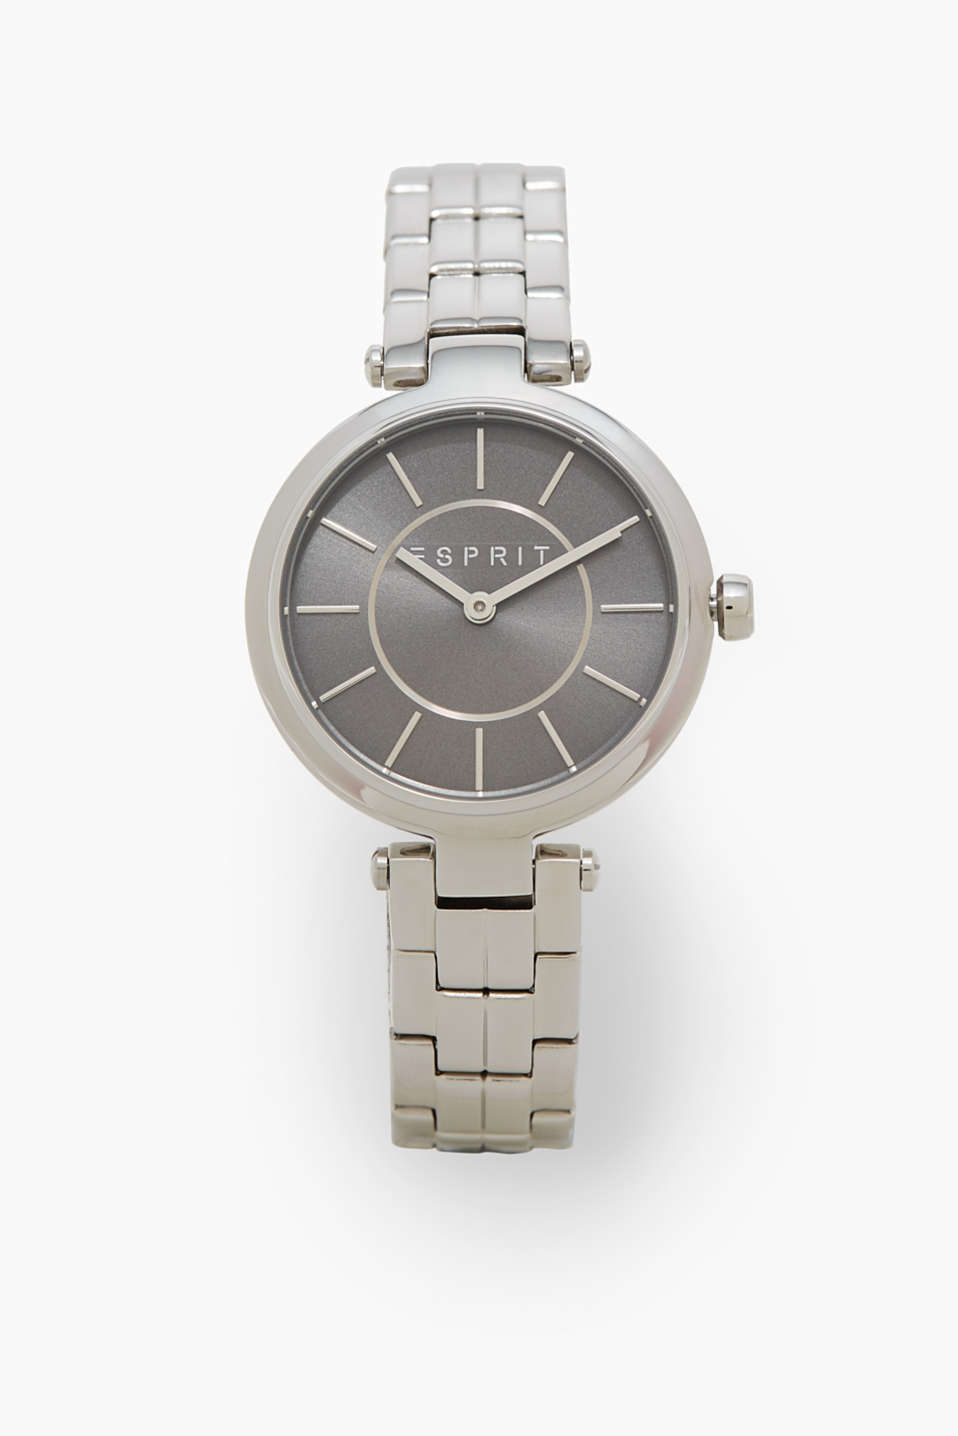 Esprit - Timeless watch with a link strap